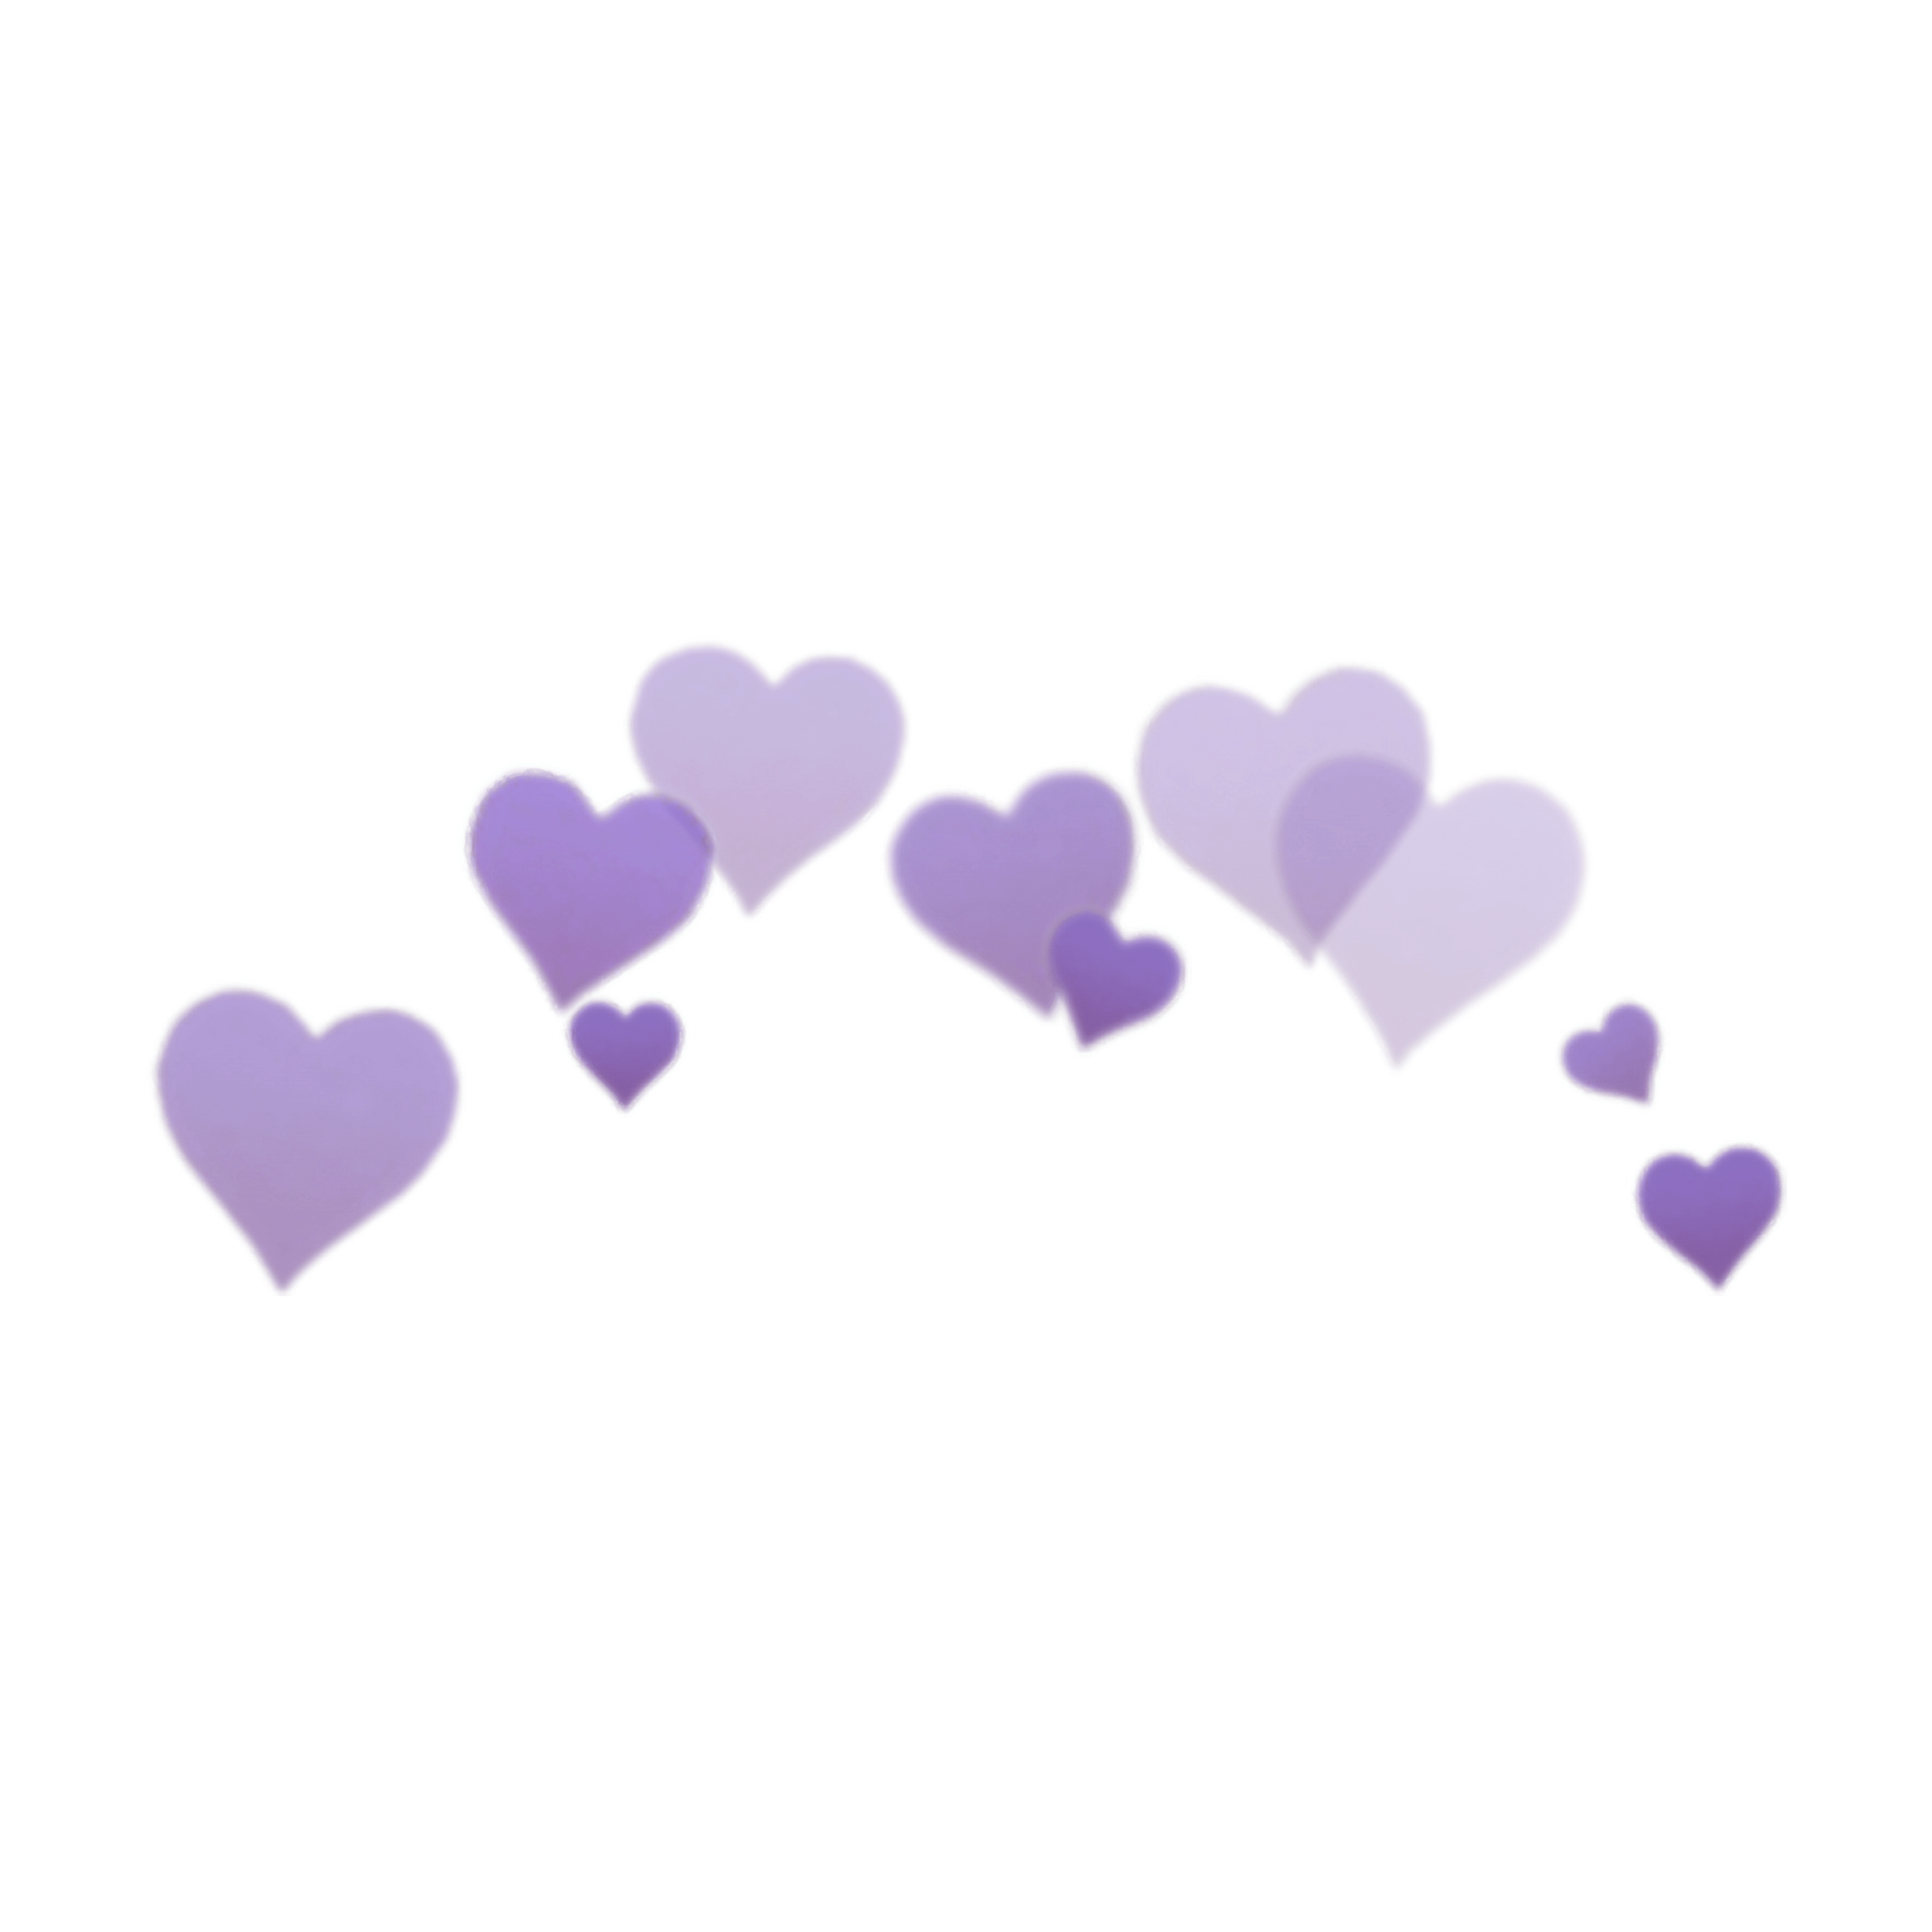 Portable Network Graphics Image Clip art Heart Transparency.